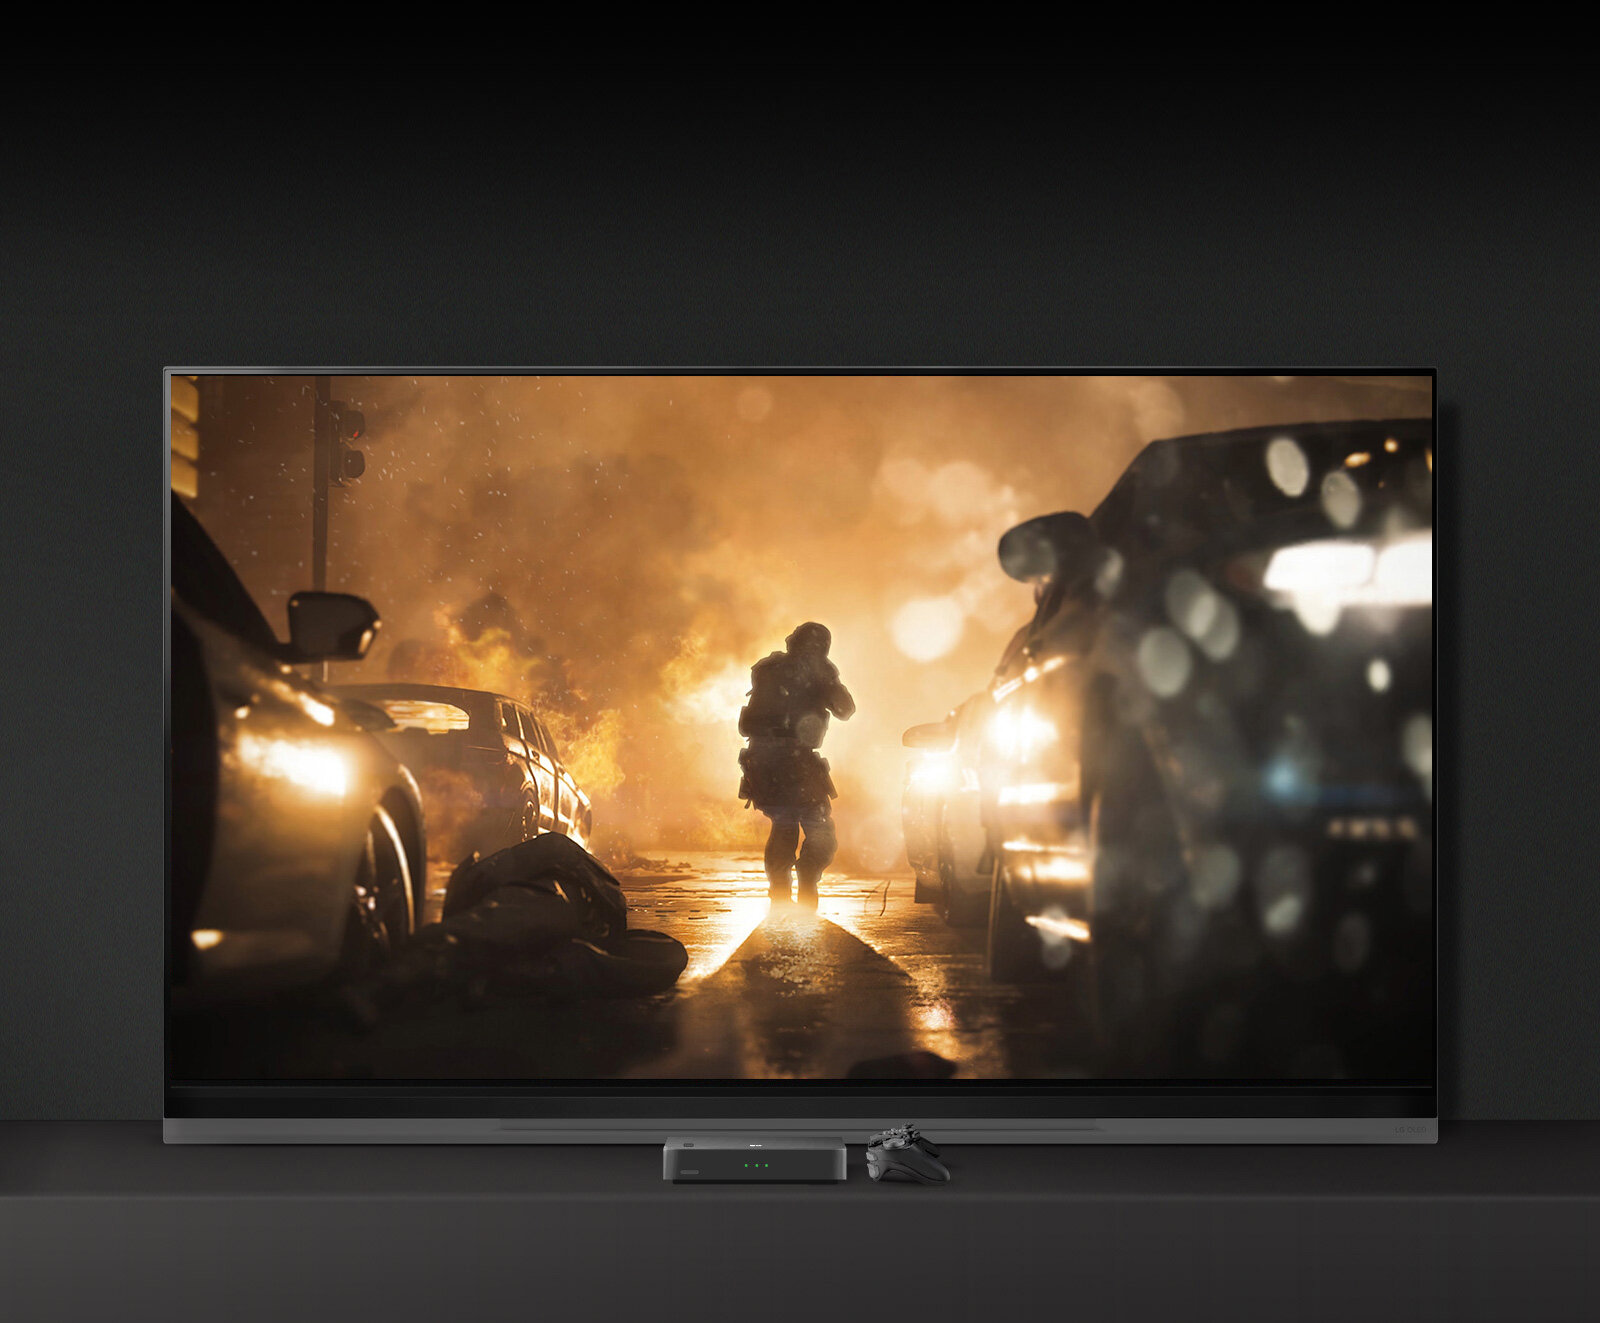 A New Level of Realism with OLED Black - Experience breathtaking immersion with the dark details. 4K HDR gaming delivers more vibrant colors, even from a Wide Viewing Angle. 5.1 Virtual Surround Sound envelops you in dramatic sound for a complete gaming experience.